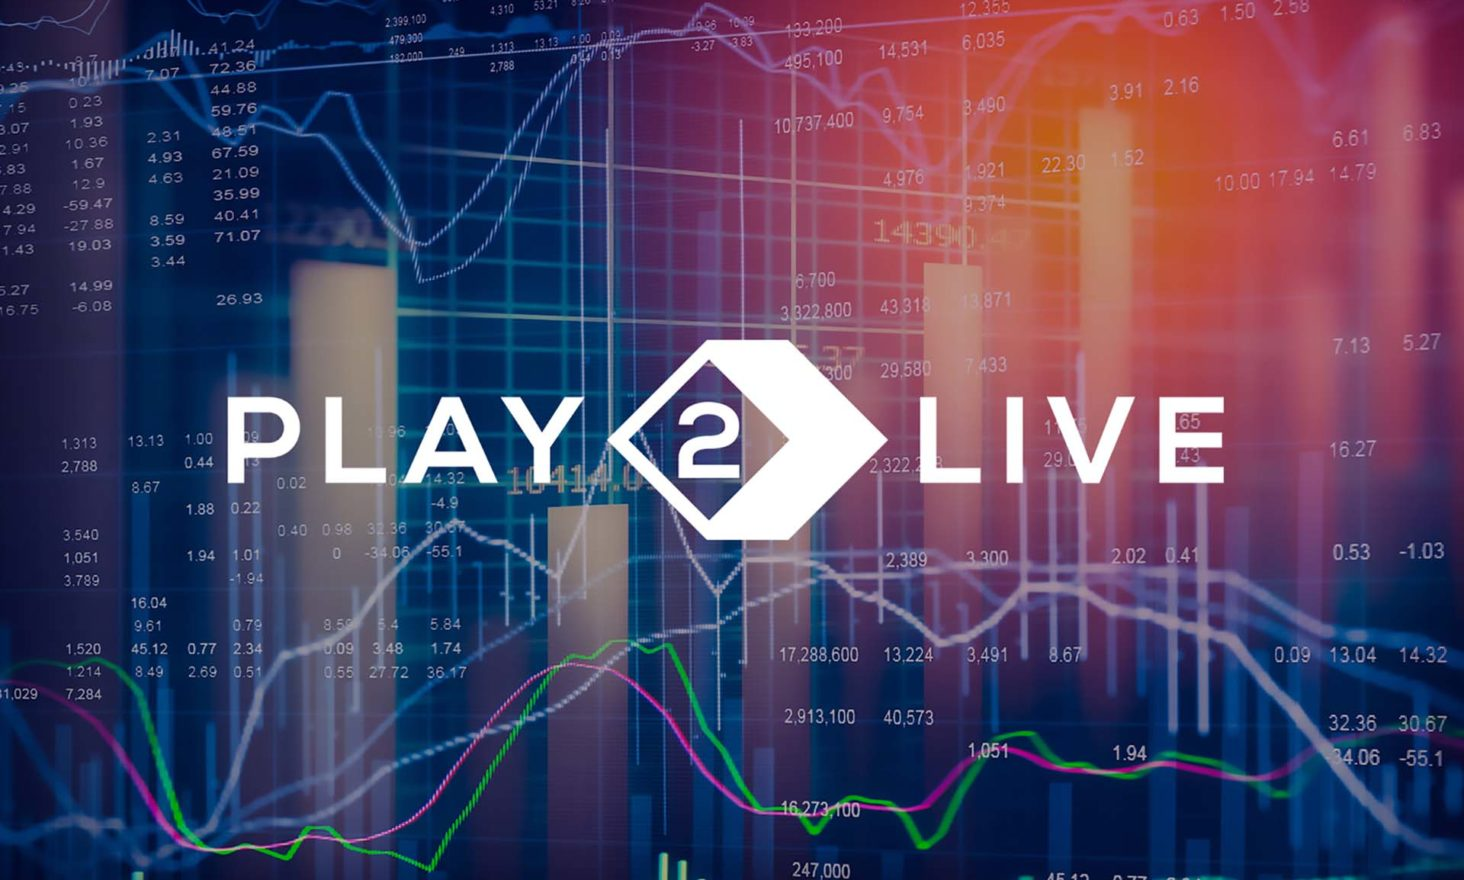 Play2Live Enters Crypto Exchanges and Launches Payments in LUC Tokens on P2L.TV